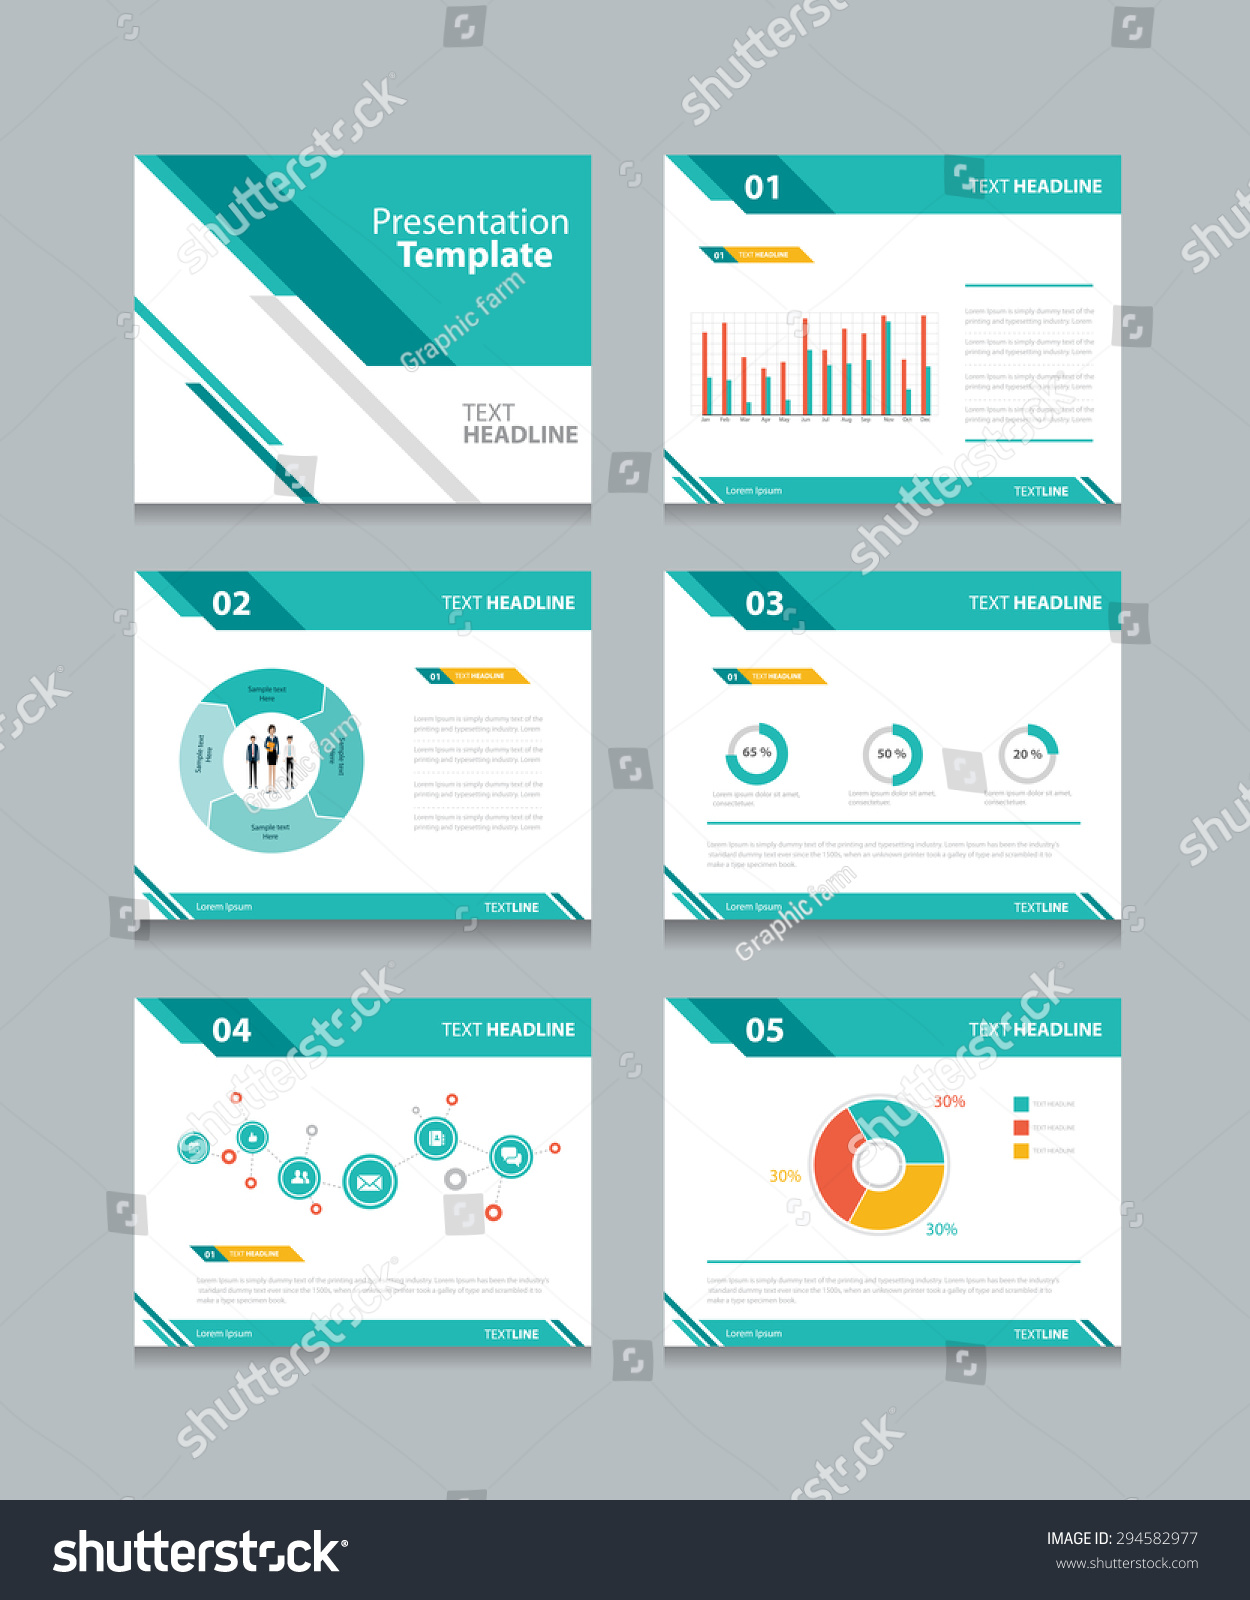 what is design template in powerpoint - business presentation template setpowerpoint template